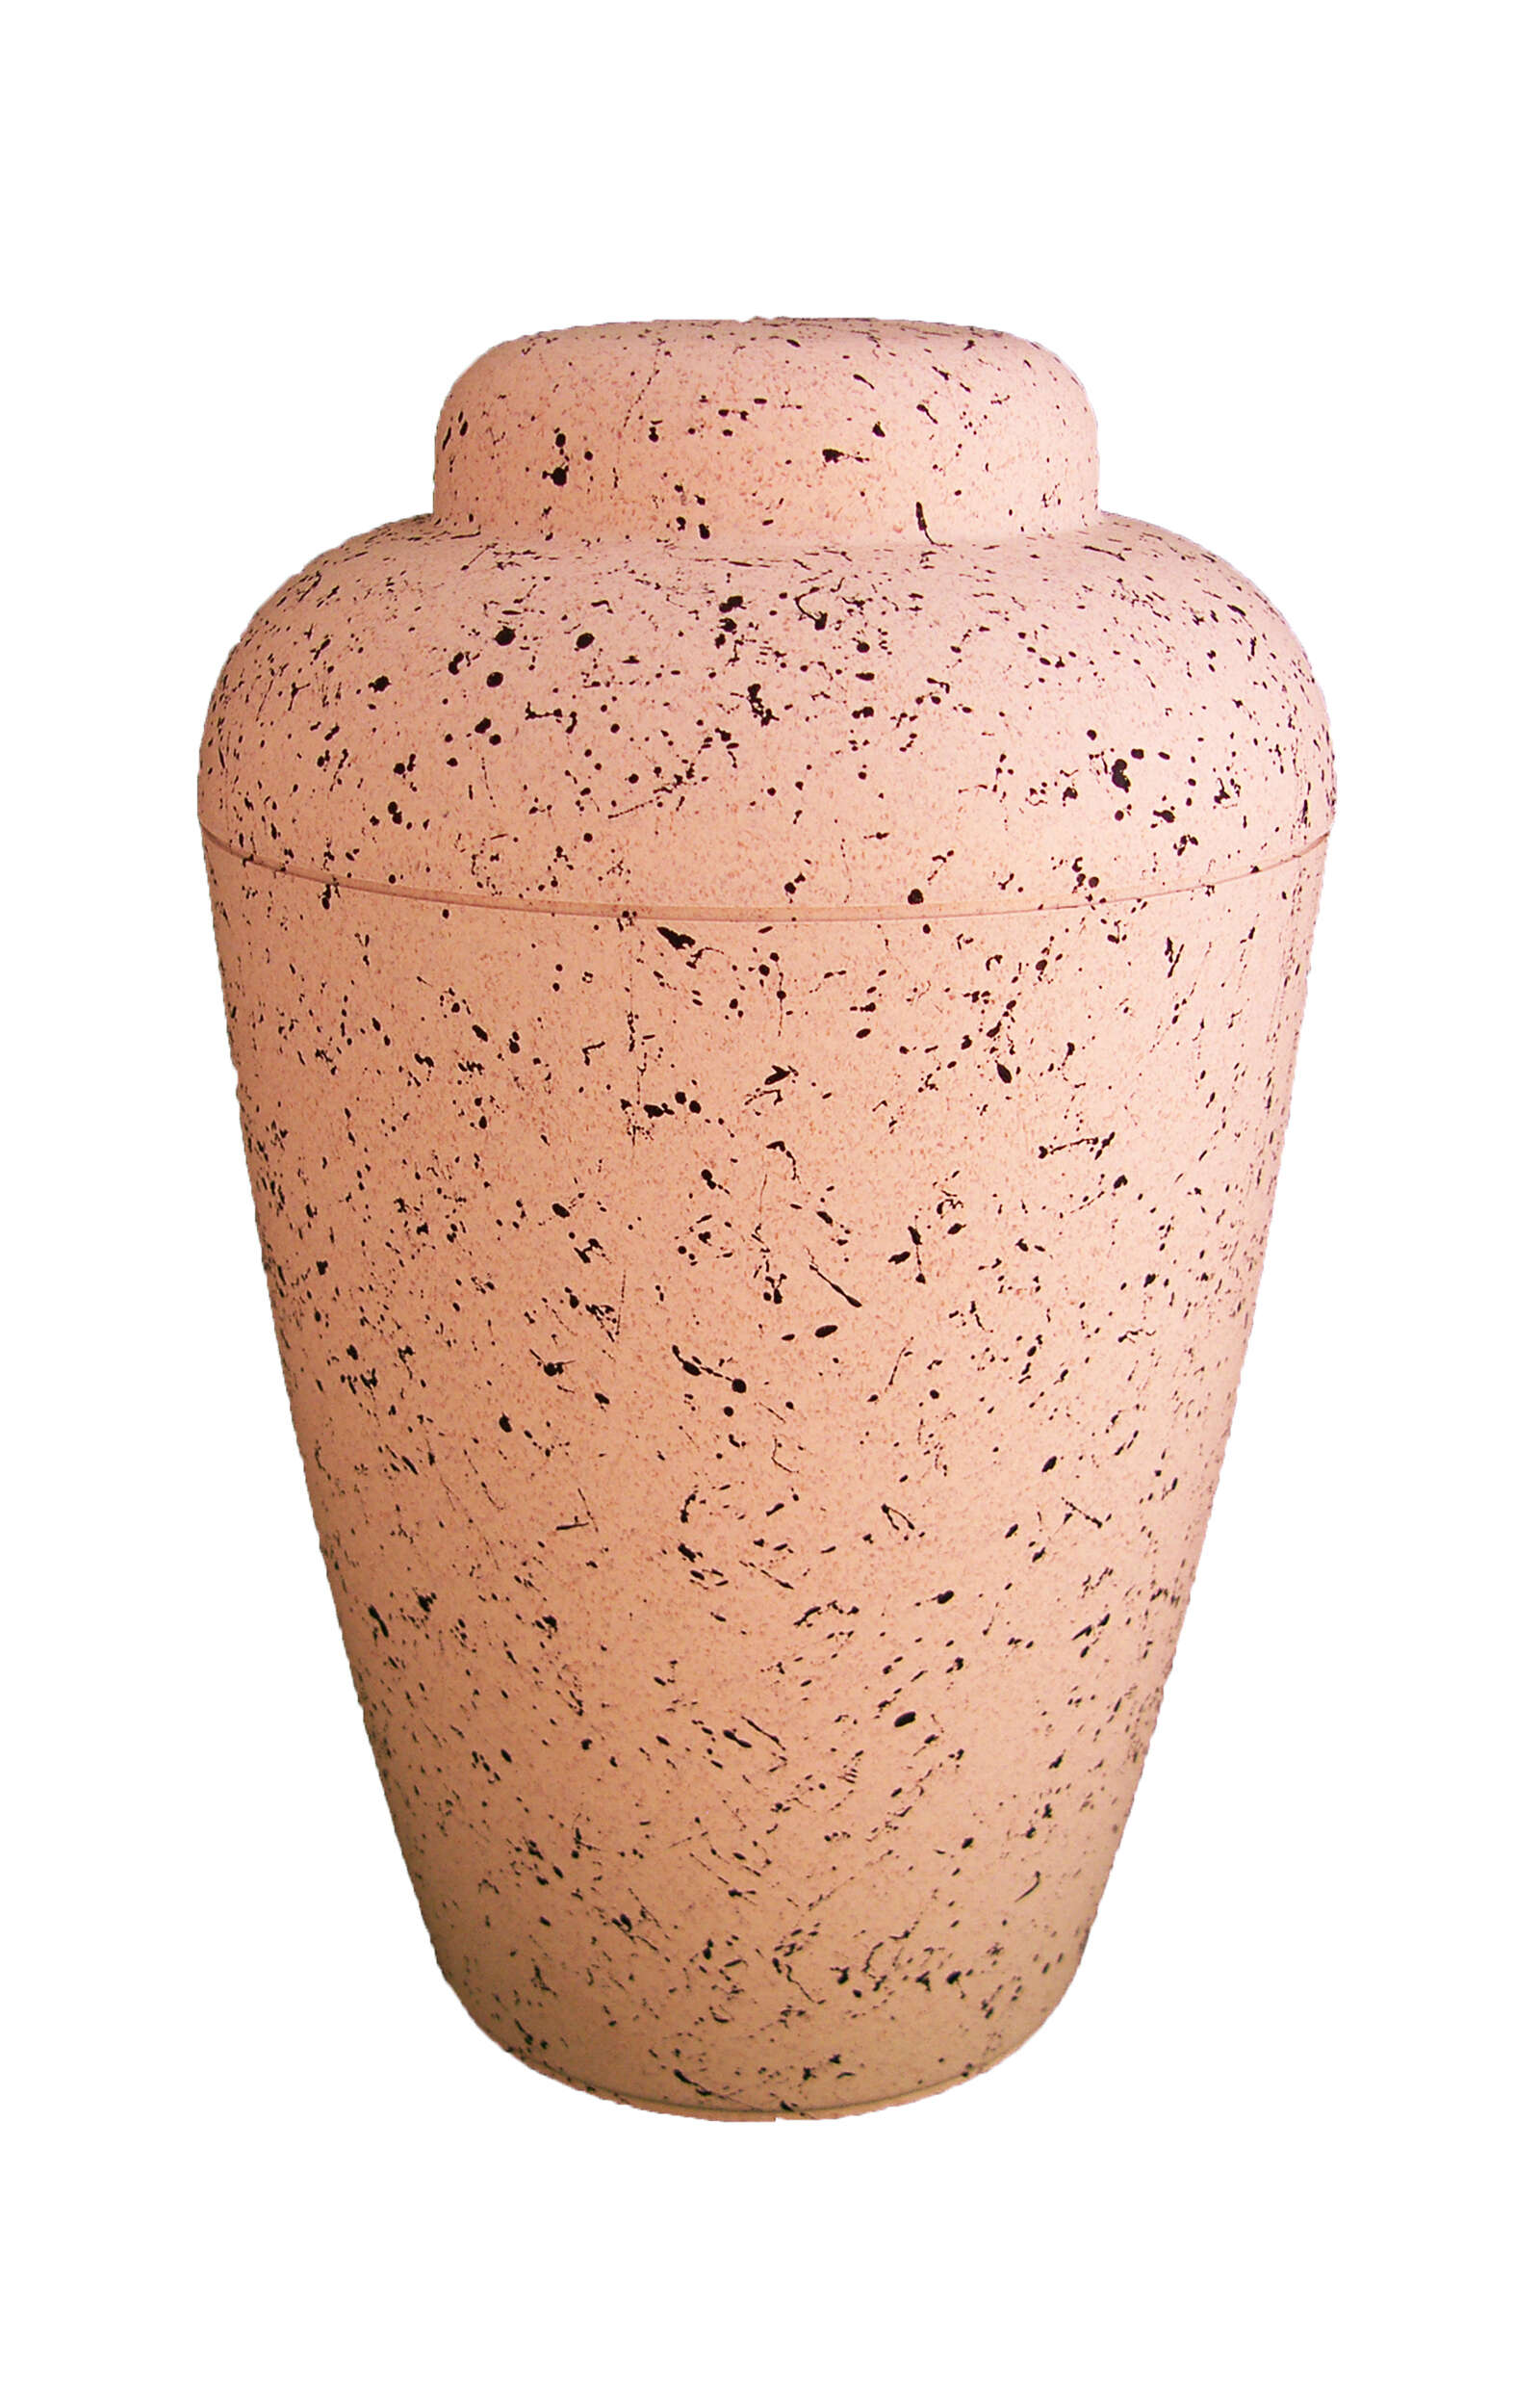 en BVW1407 white bio urn with black speckle